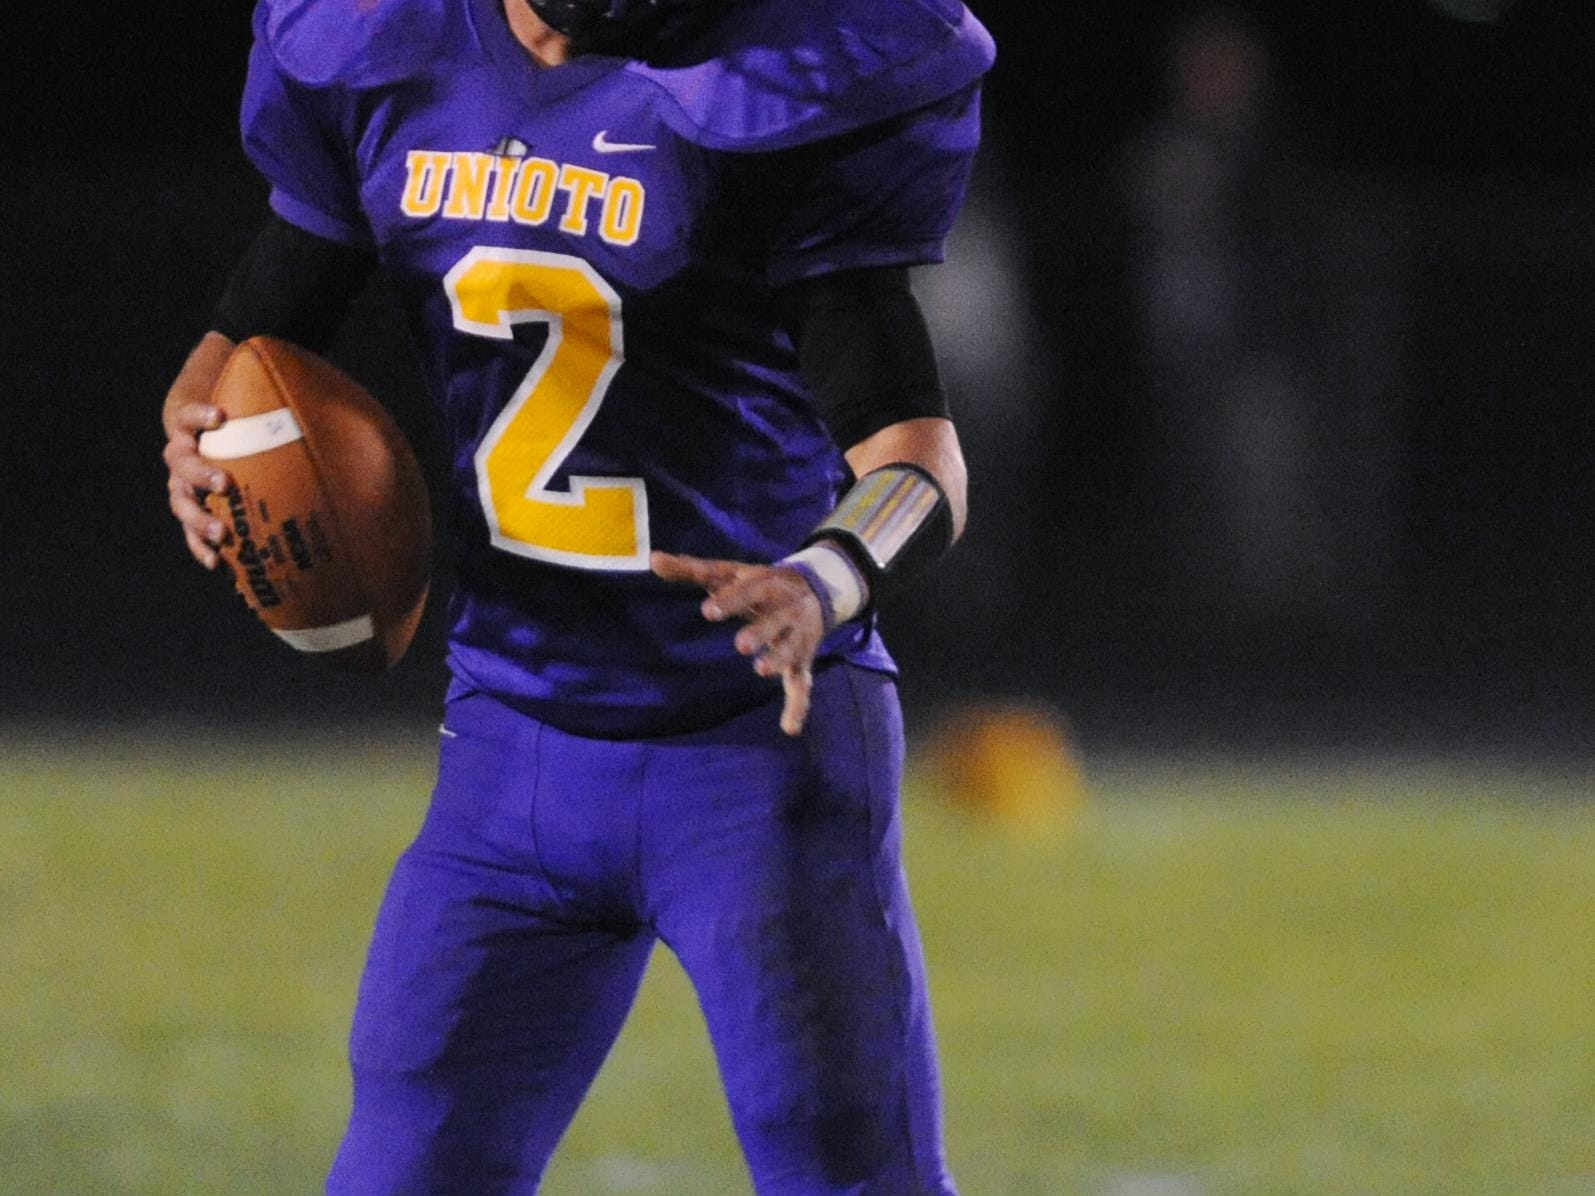 Unioto's Clay Edler looks to pass during last week's game against Piketon. Edler was honored with the Week 9 Player of the Week award by the Gazette's online voters.